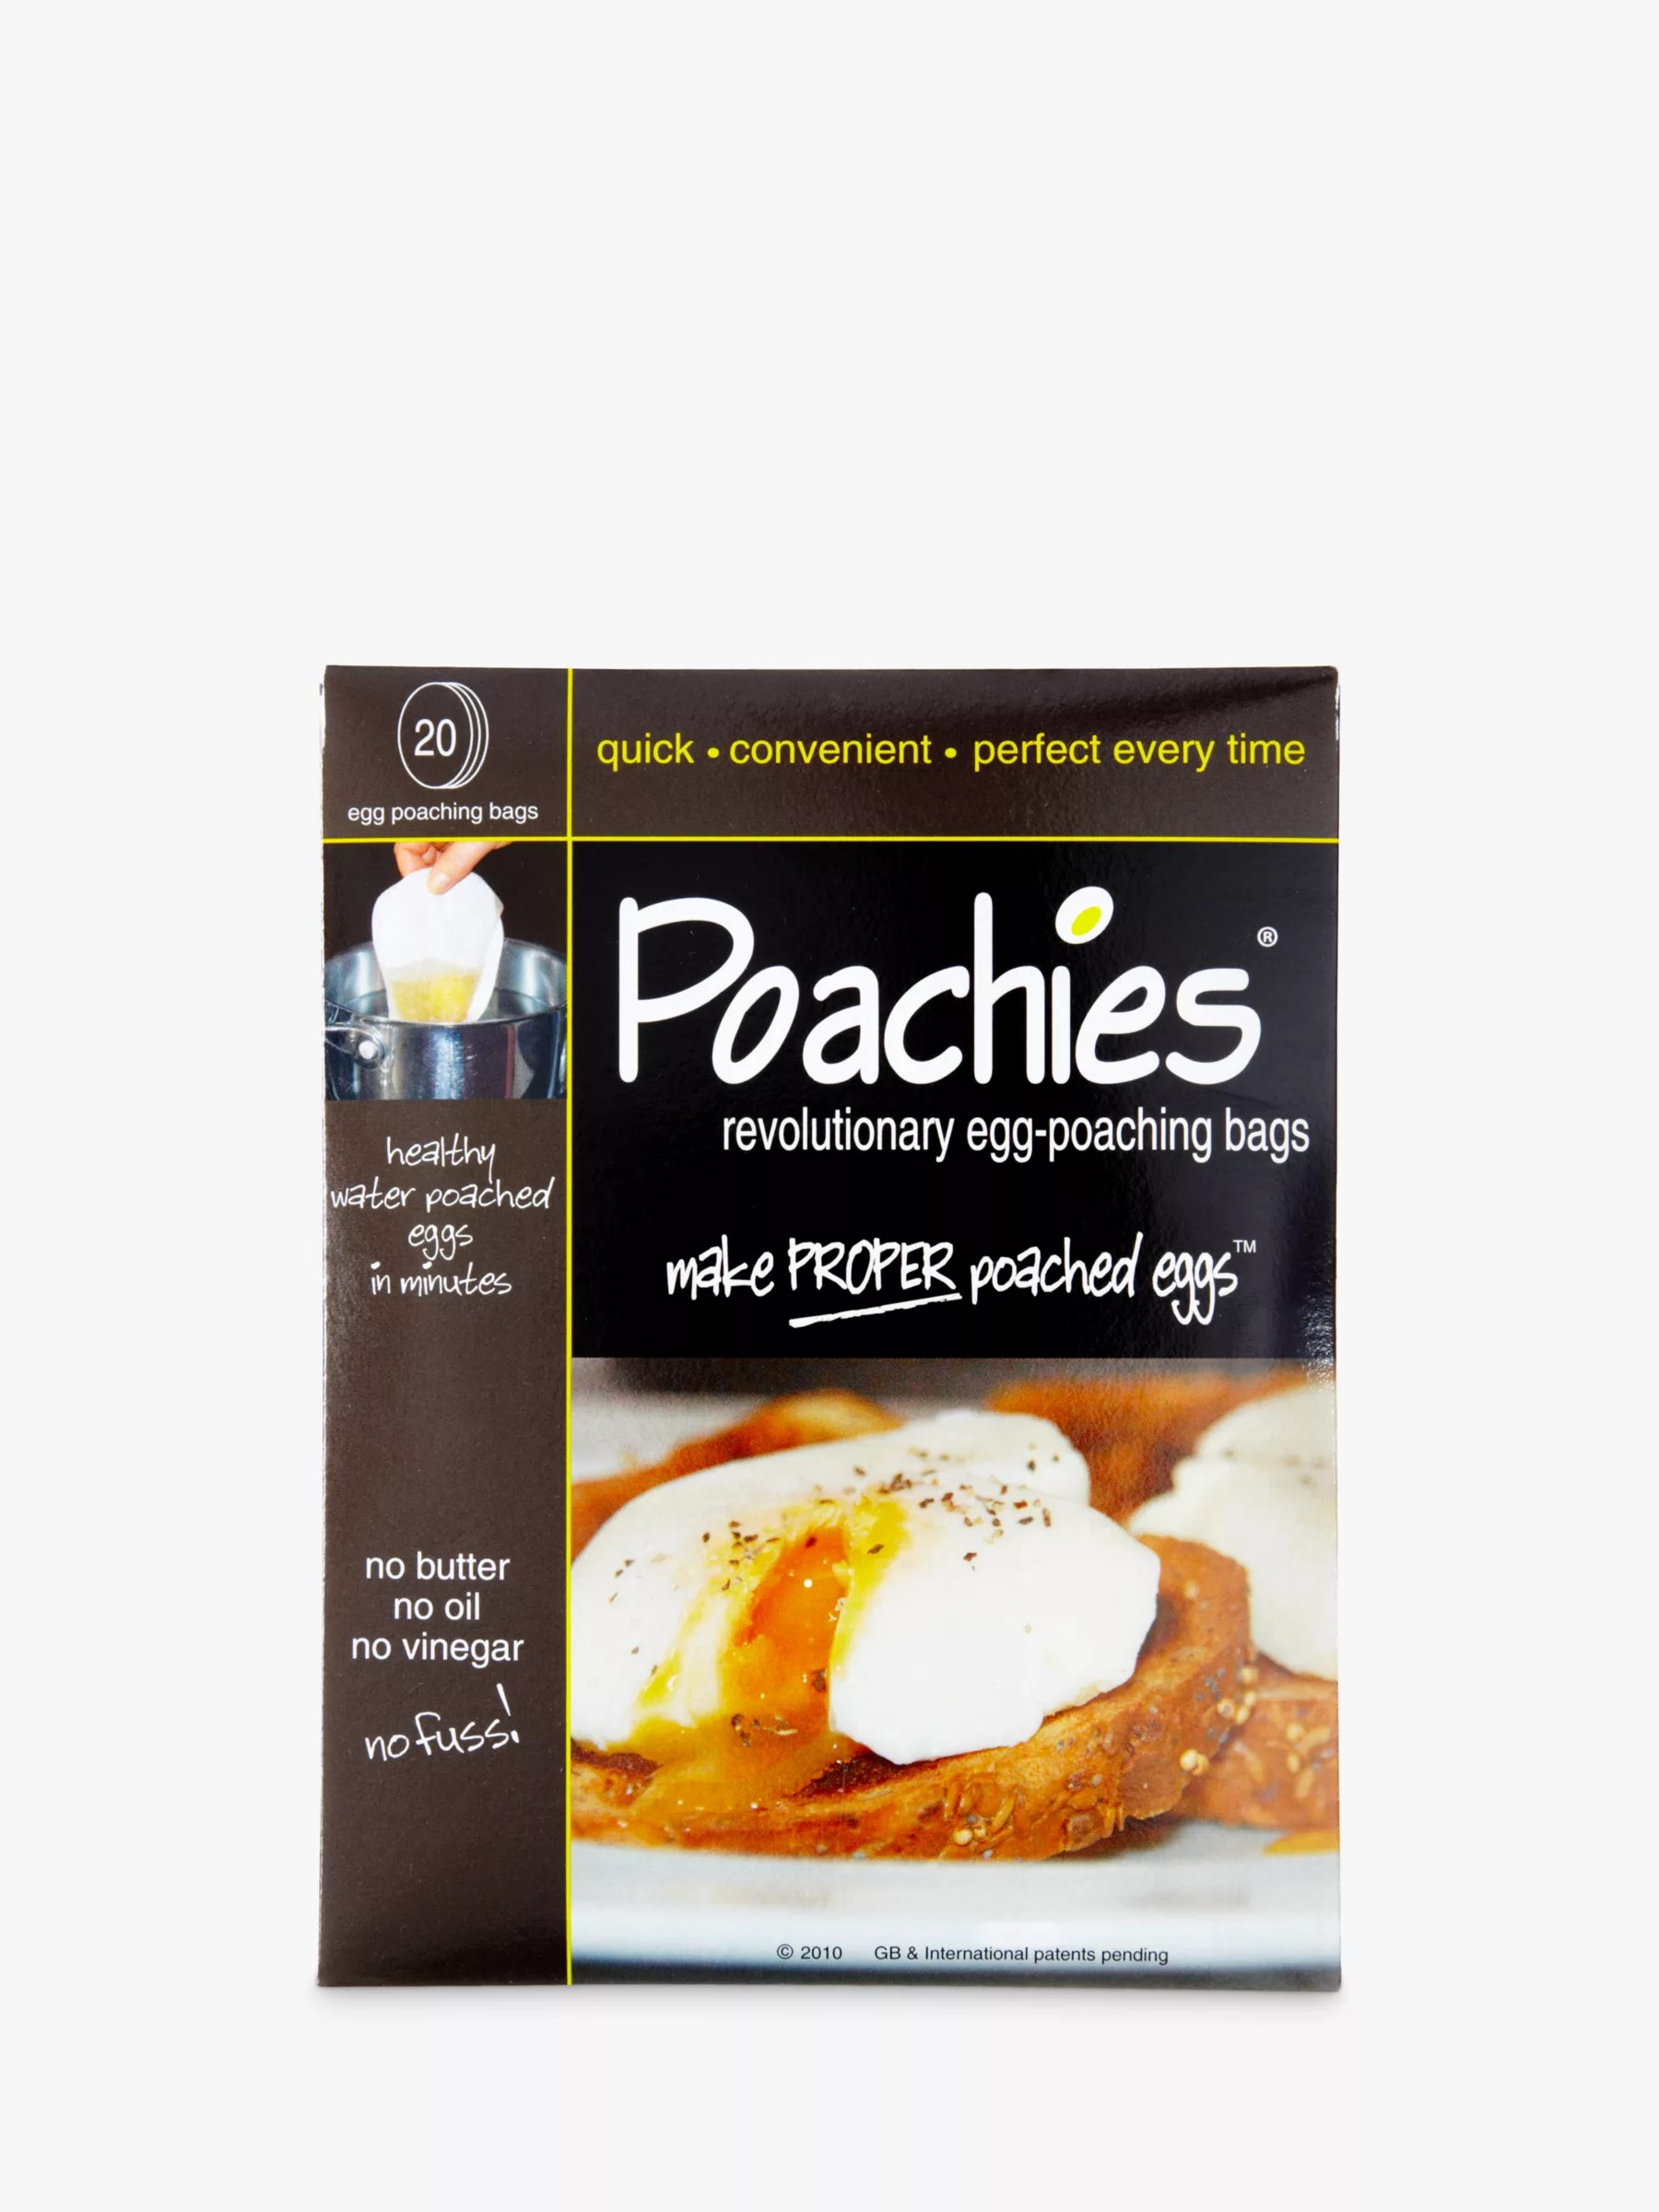 Pool Kaufen Coop Poachies Egg Poaching Bags At John Lewis Partners